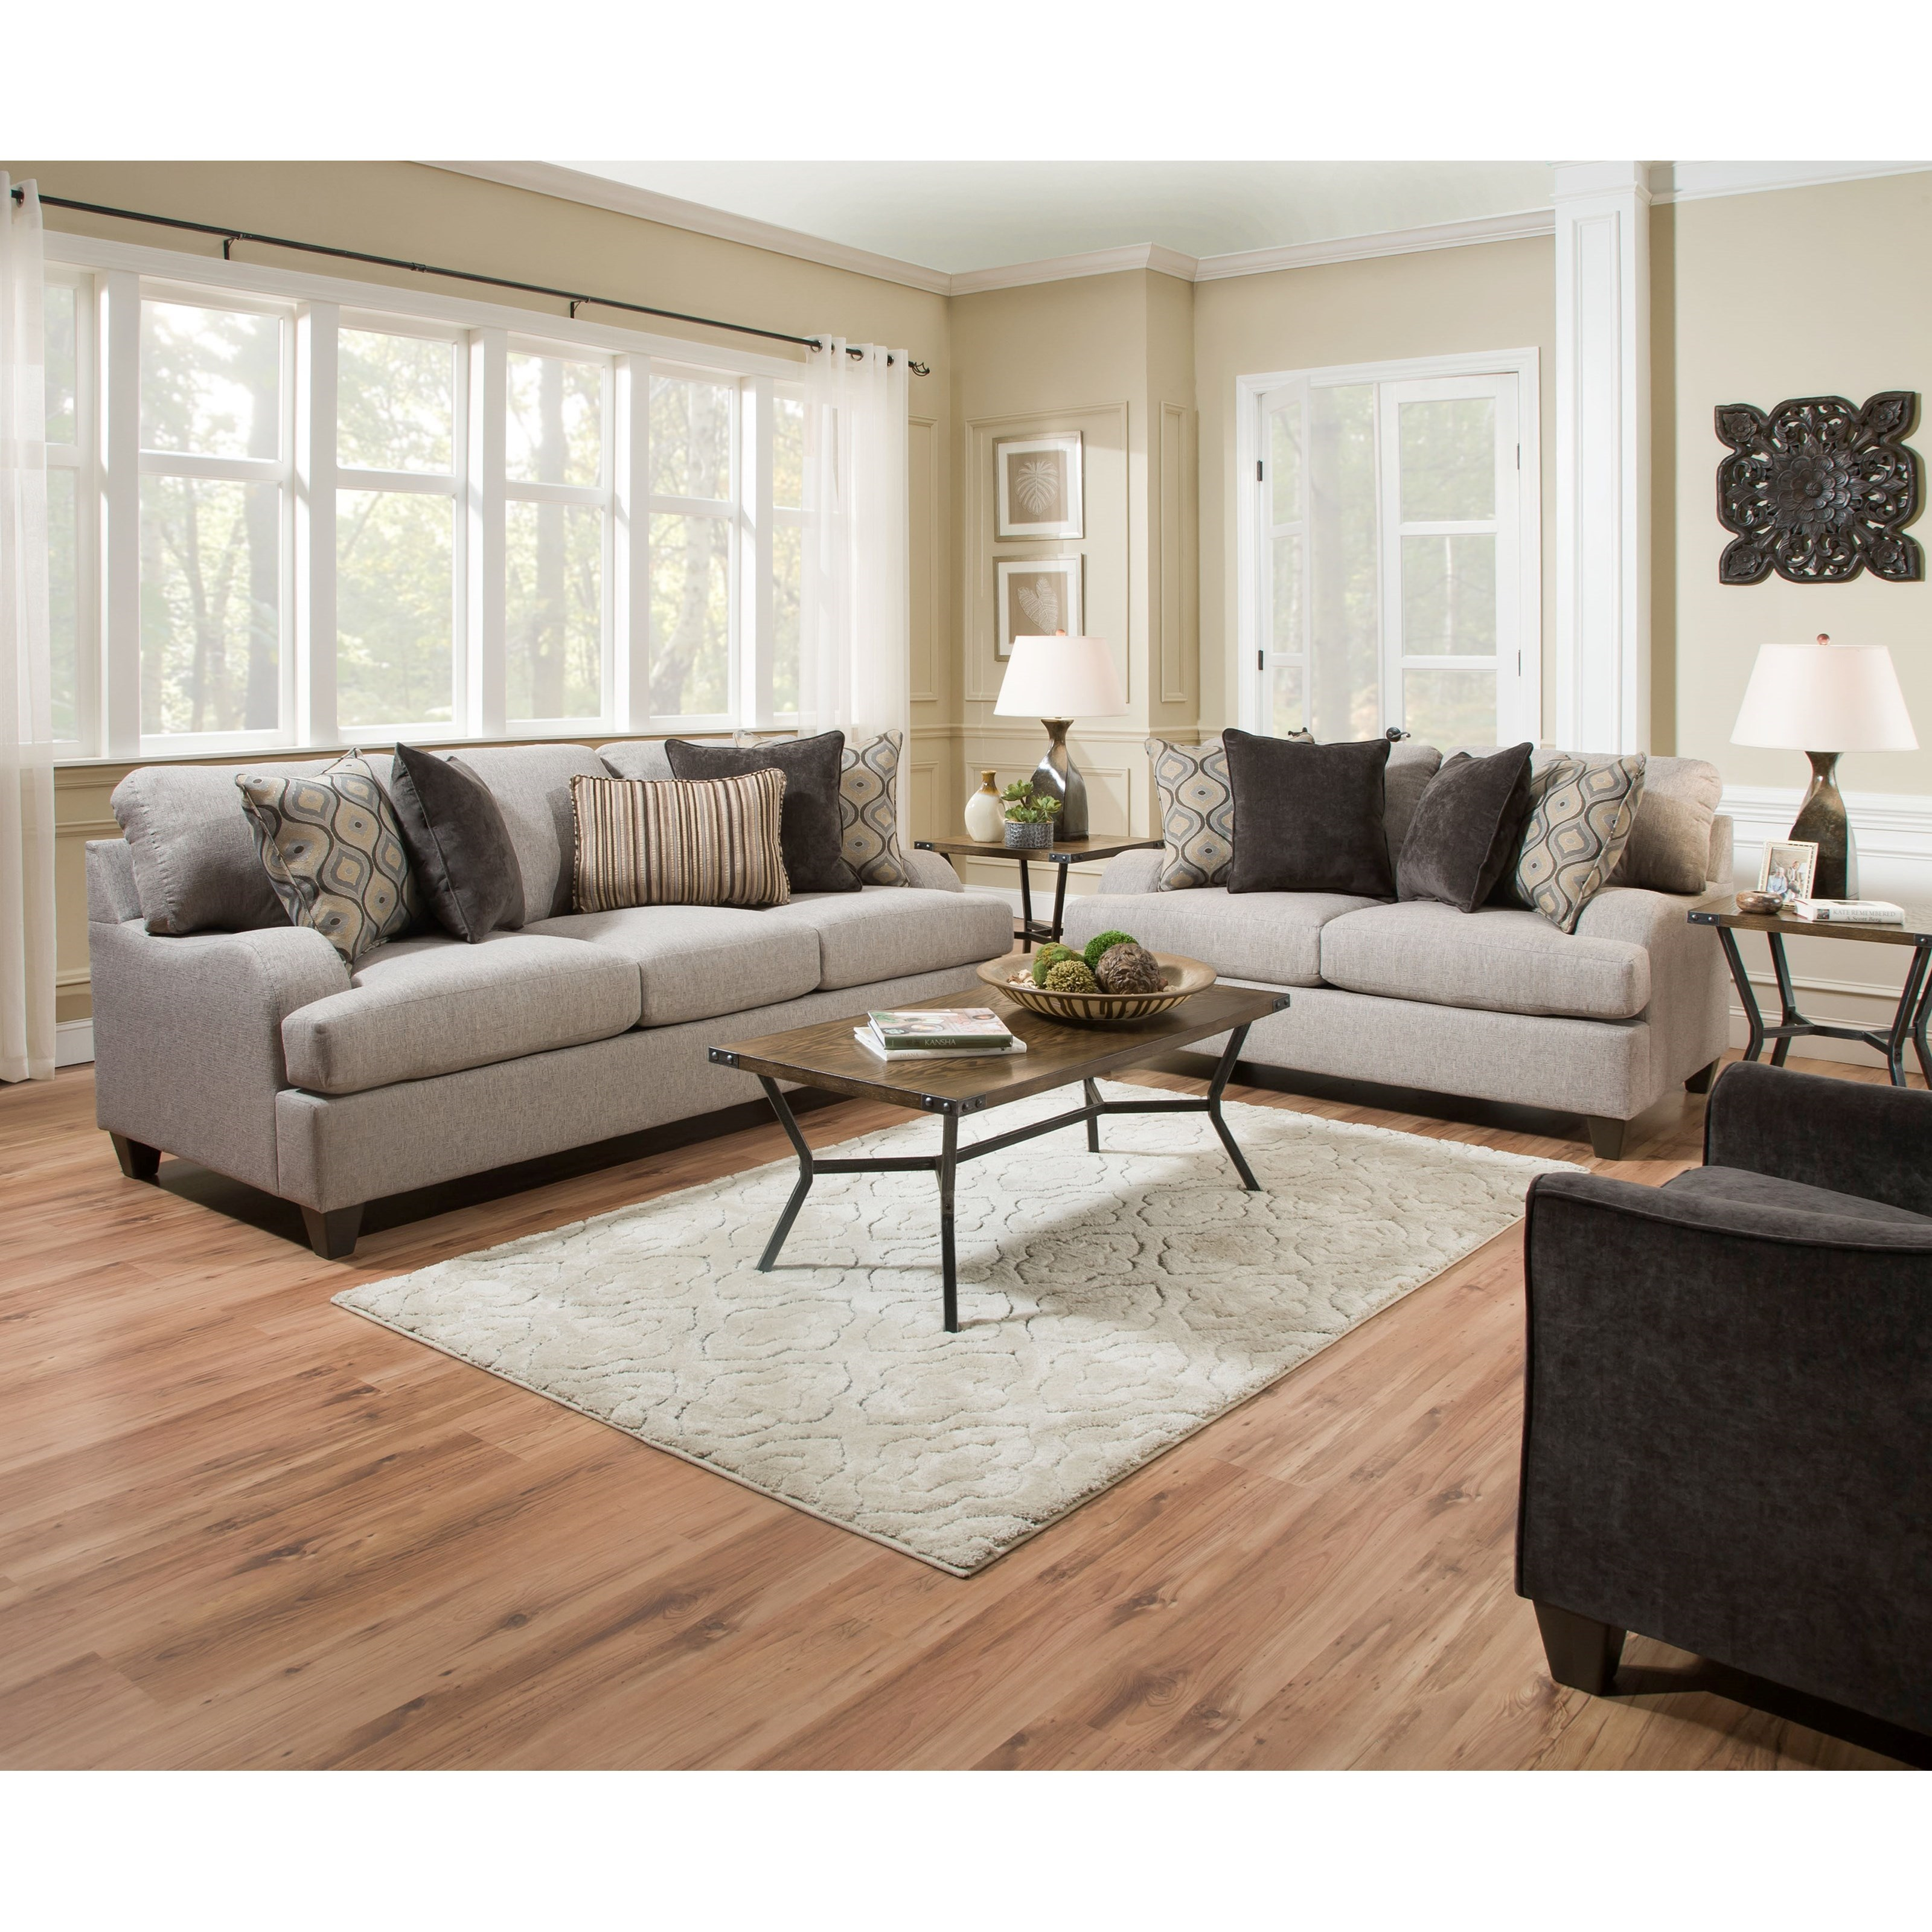 United Furniture Industries 4002 Living Room Group - Item Number: 4002 Living Room Group